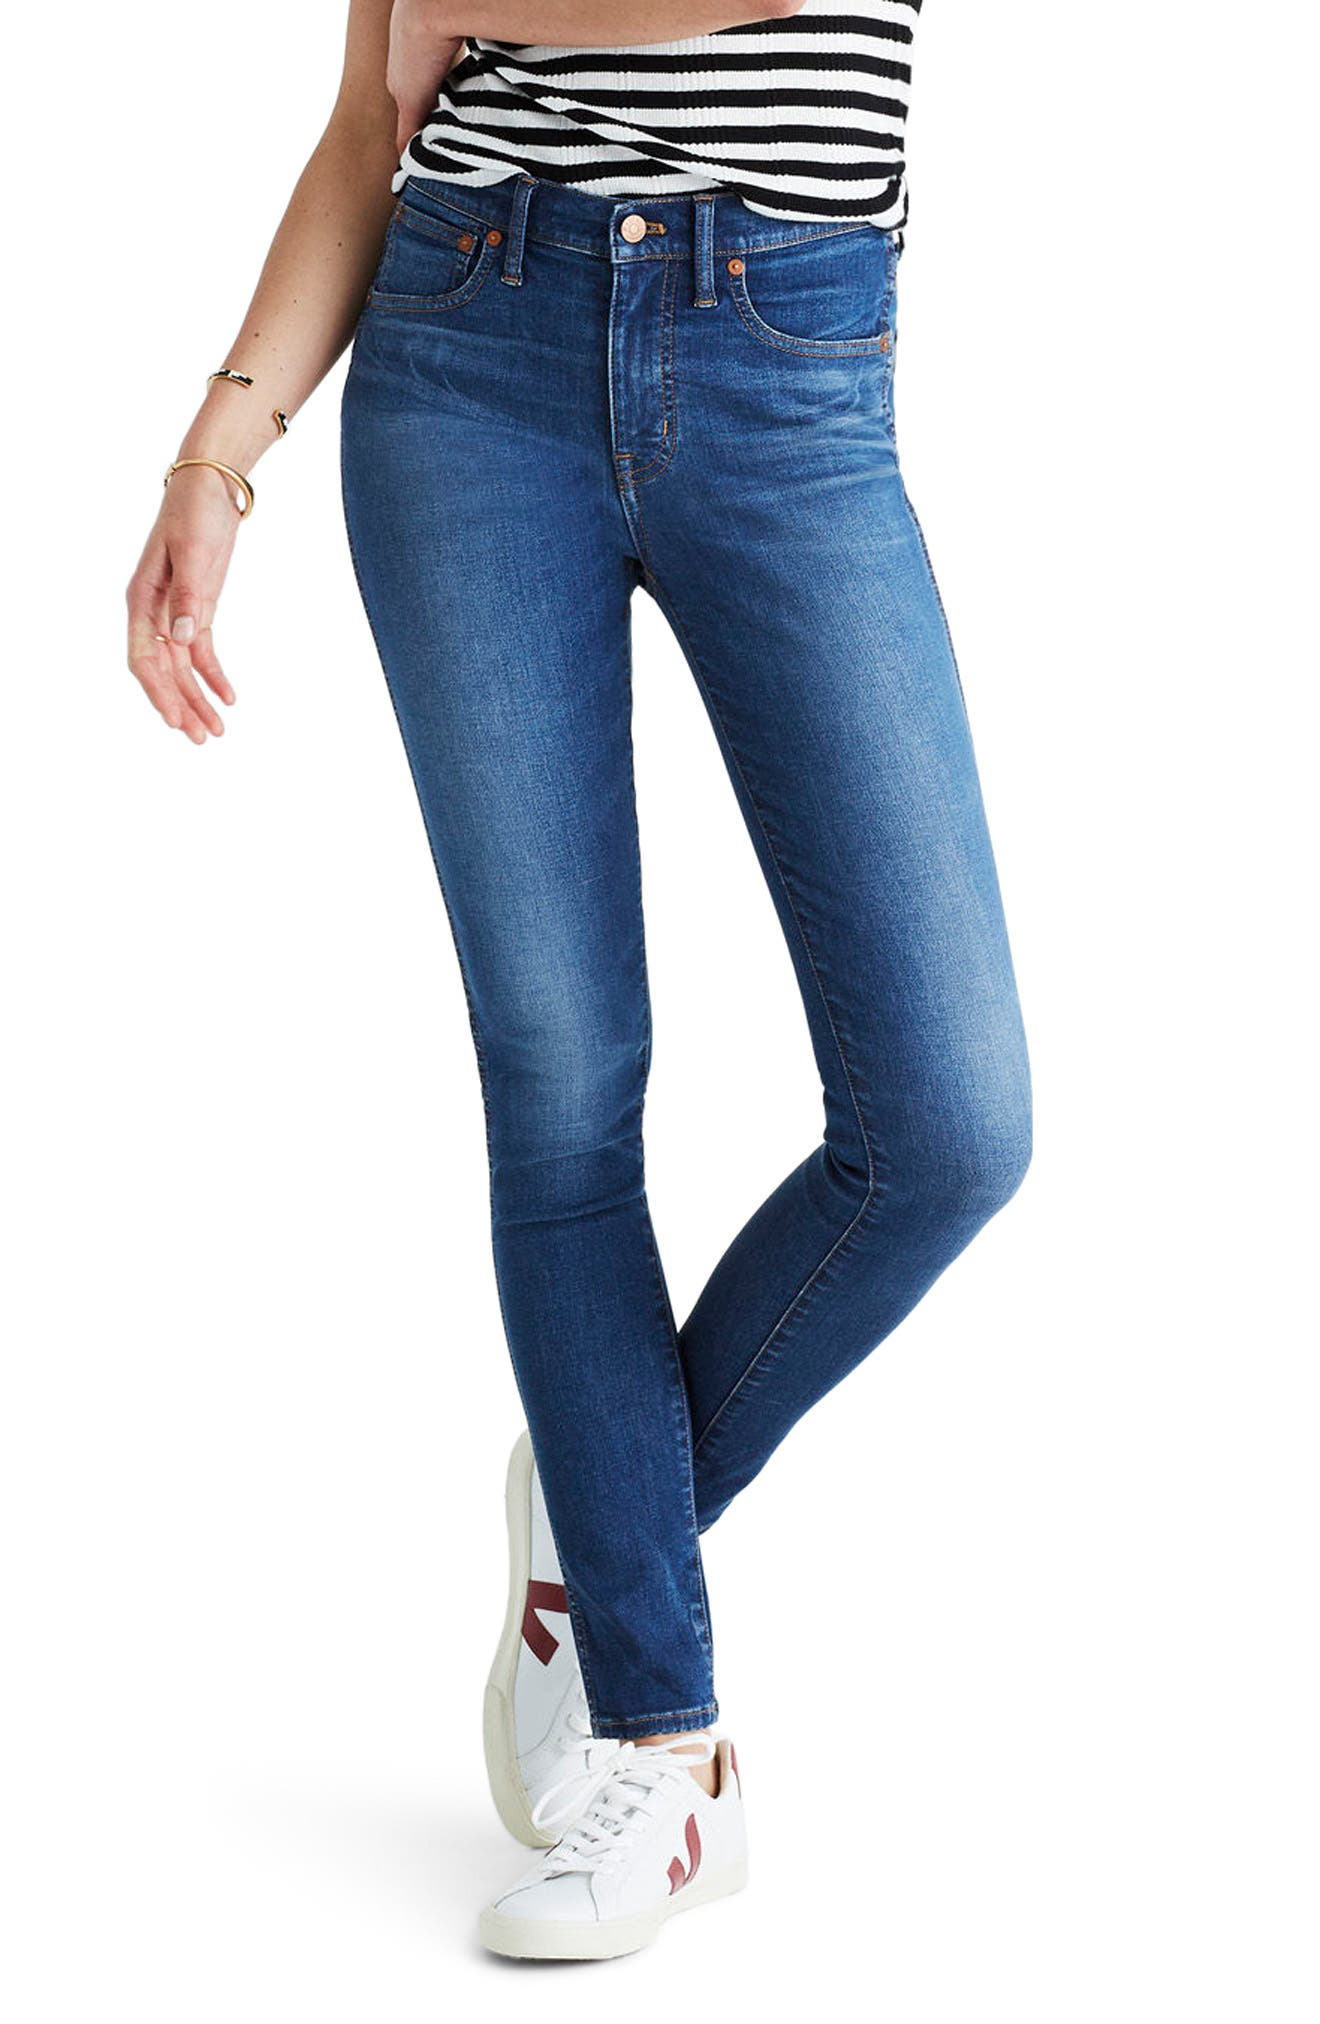 9-Inch High Waist Skinny Jeans,                             Main thumbnail 1, color,                             Patty Wash